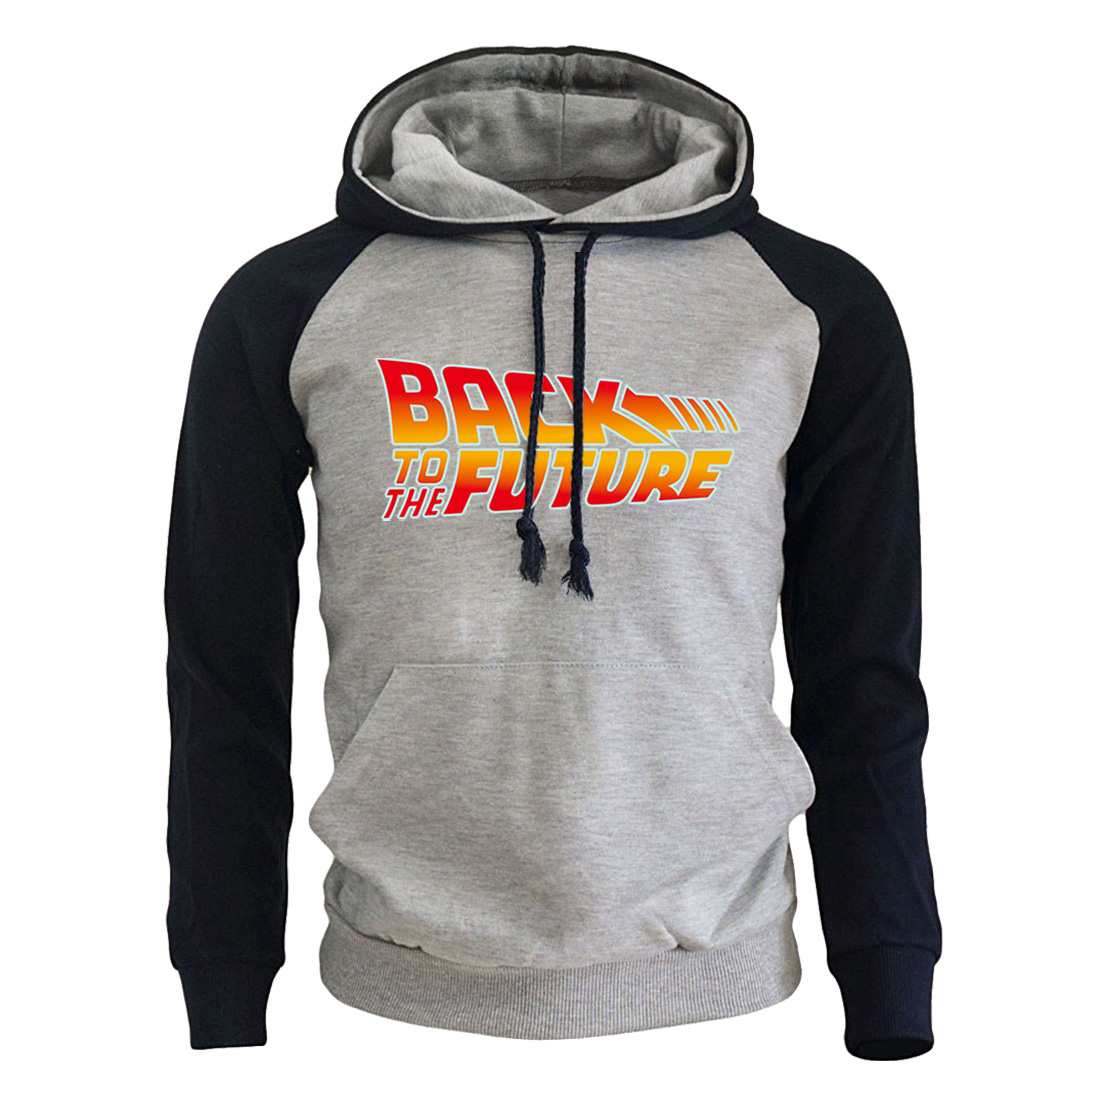 2019 New Arrival Fleece Homme Hoodies Back To The Future Letter Printed Men's Hooded Sweatshirts Hip Hop Streetwear Mens Hoody